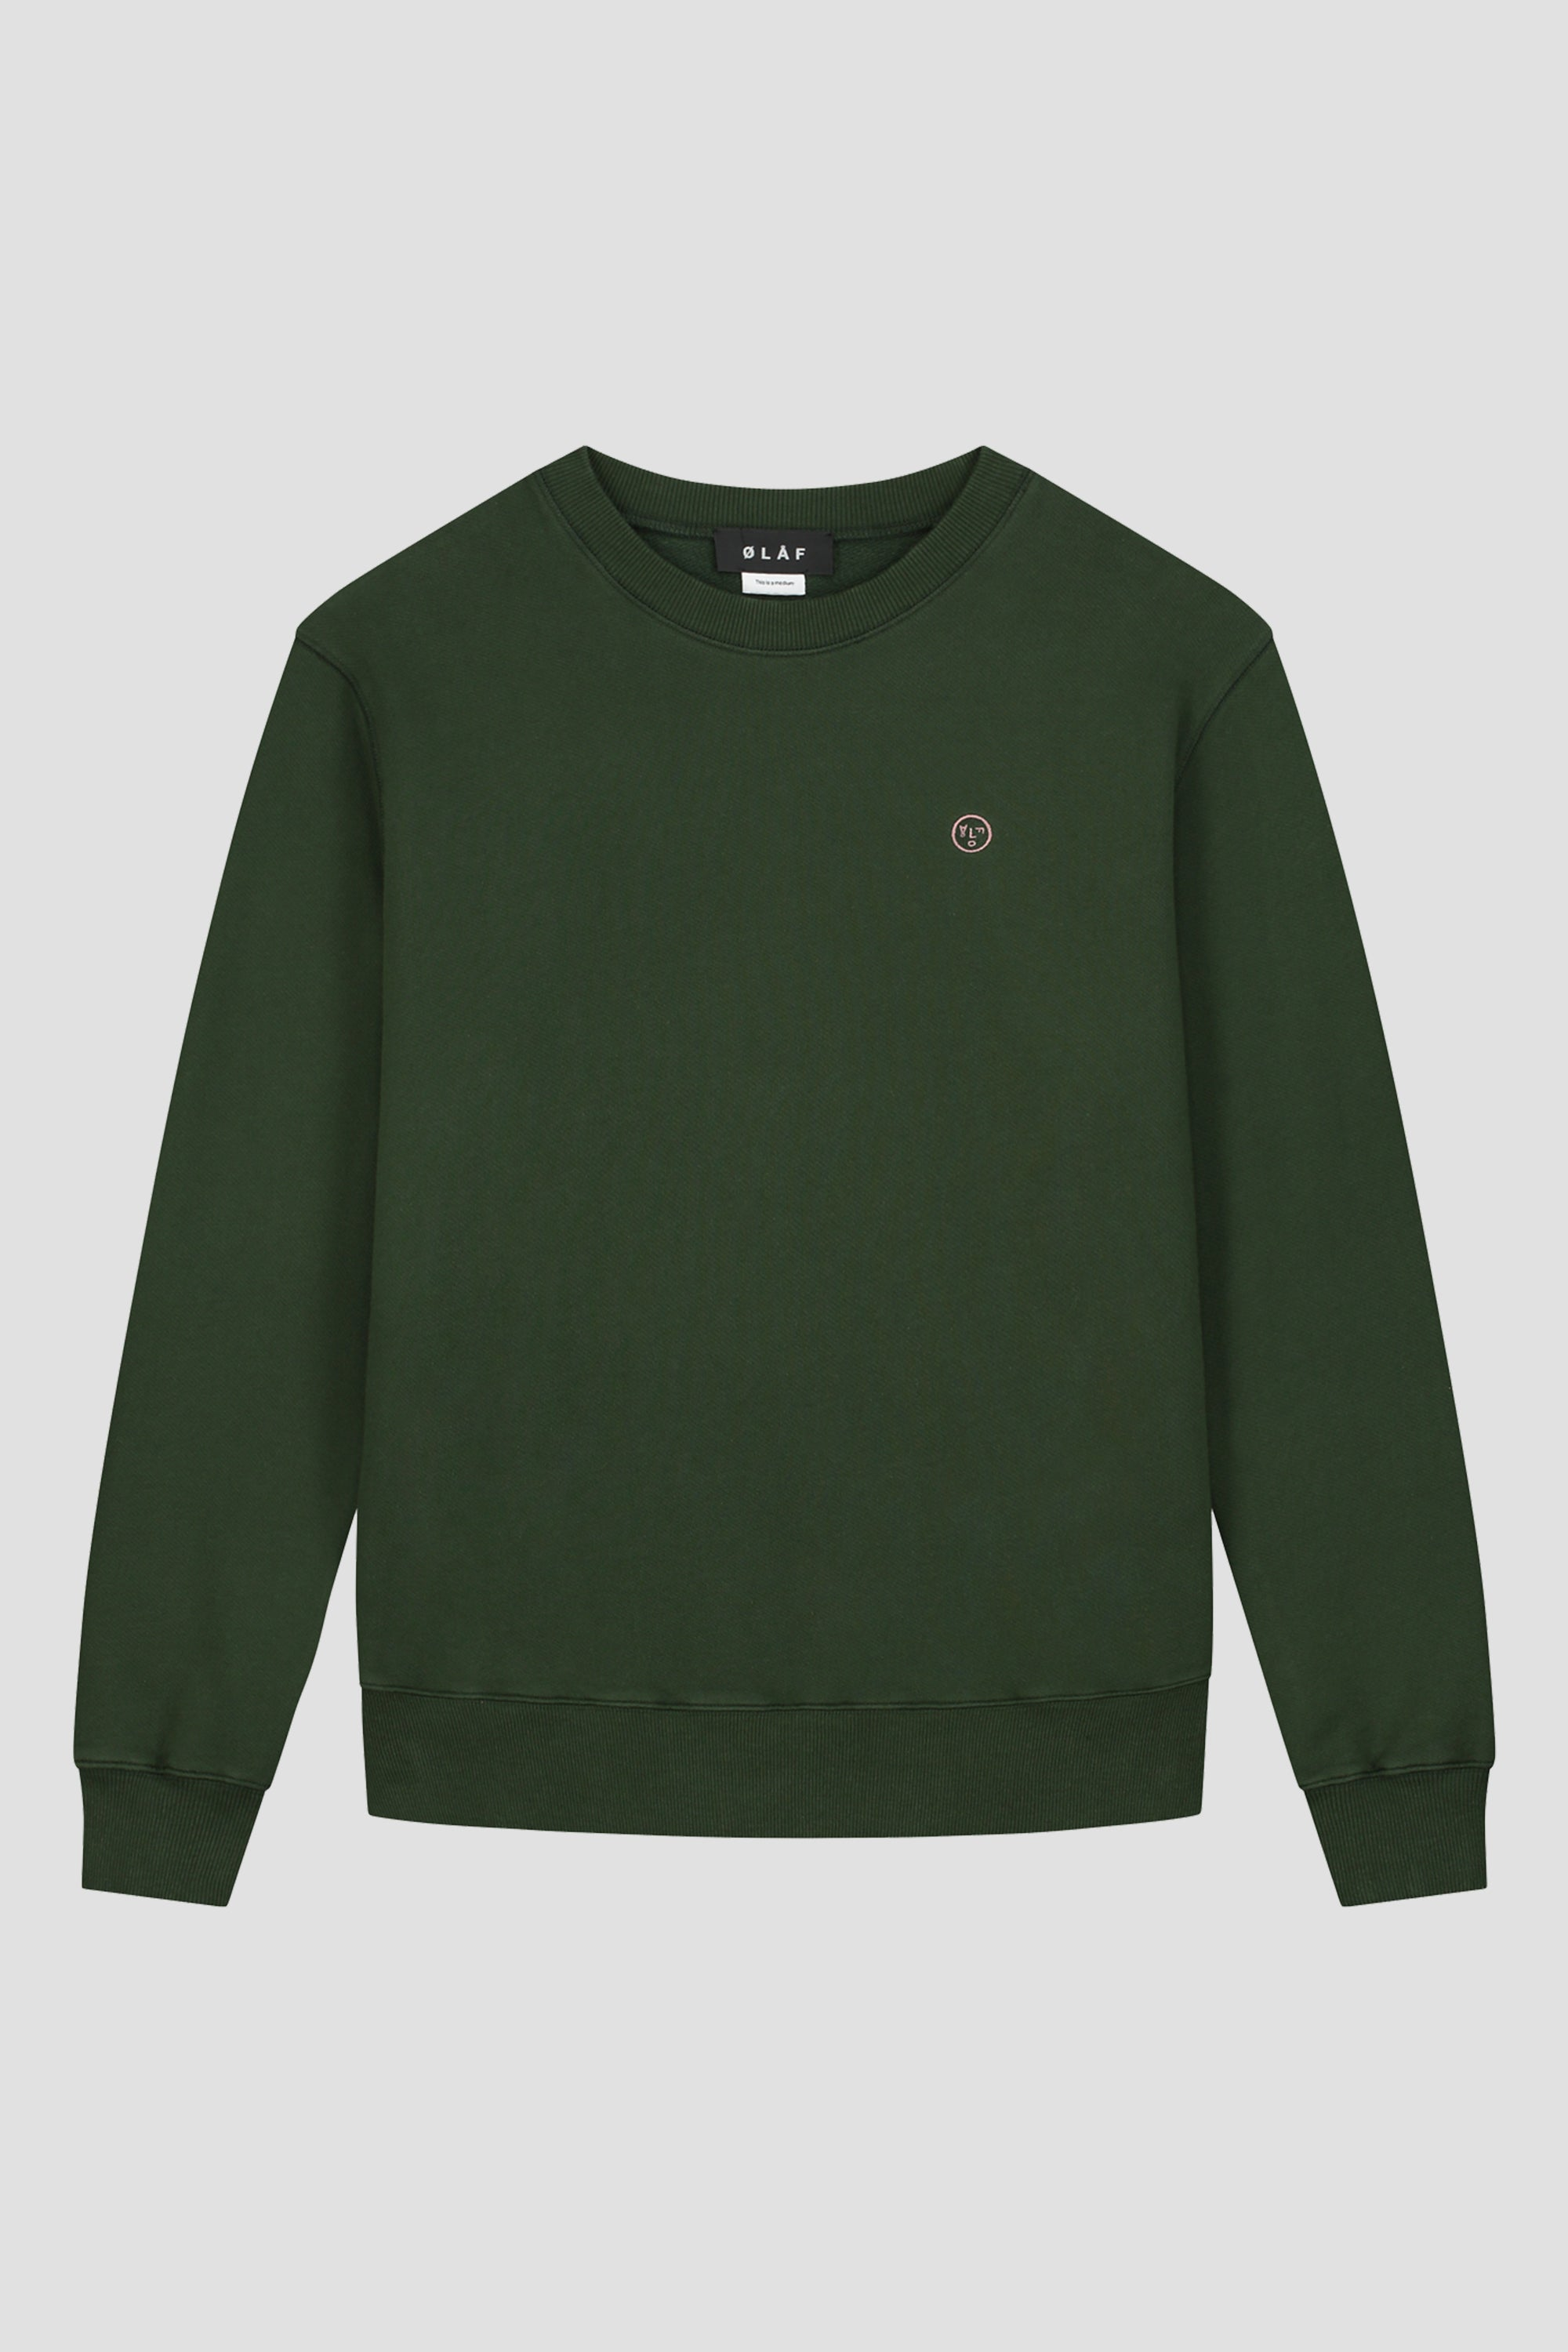 ØLÅF Face Crewneck <br>Dark Forest